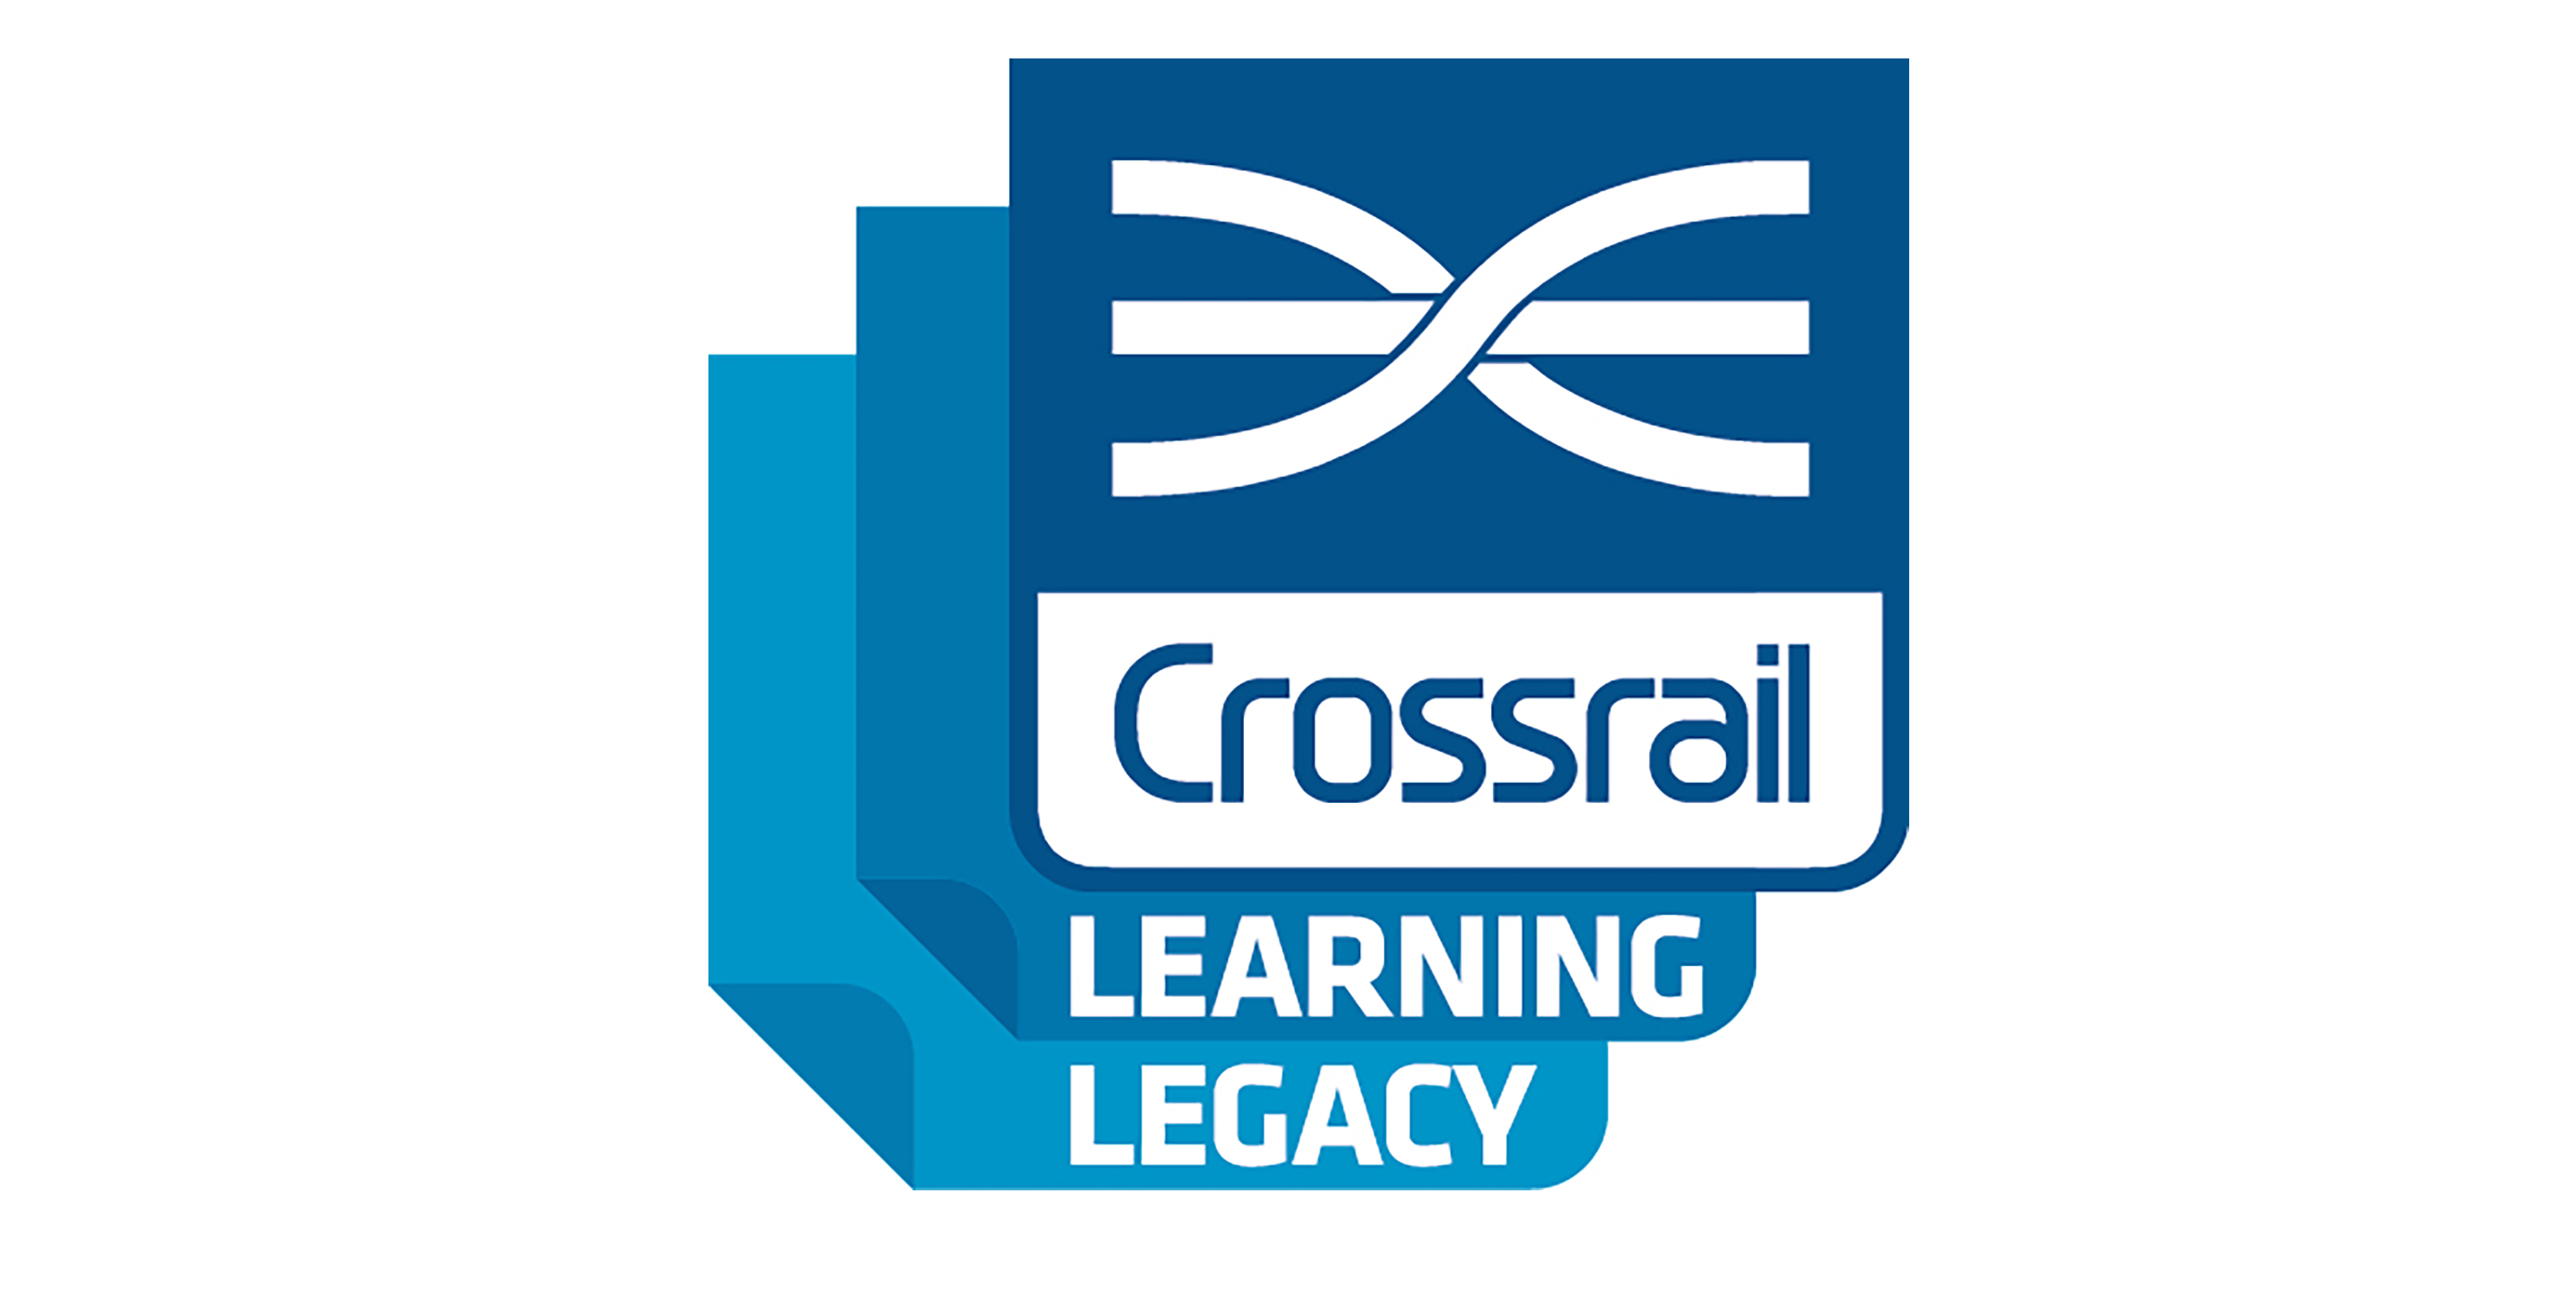 Crossrail Learning Legacy logo